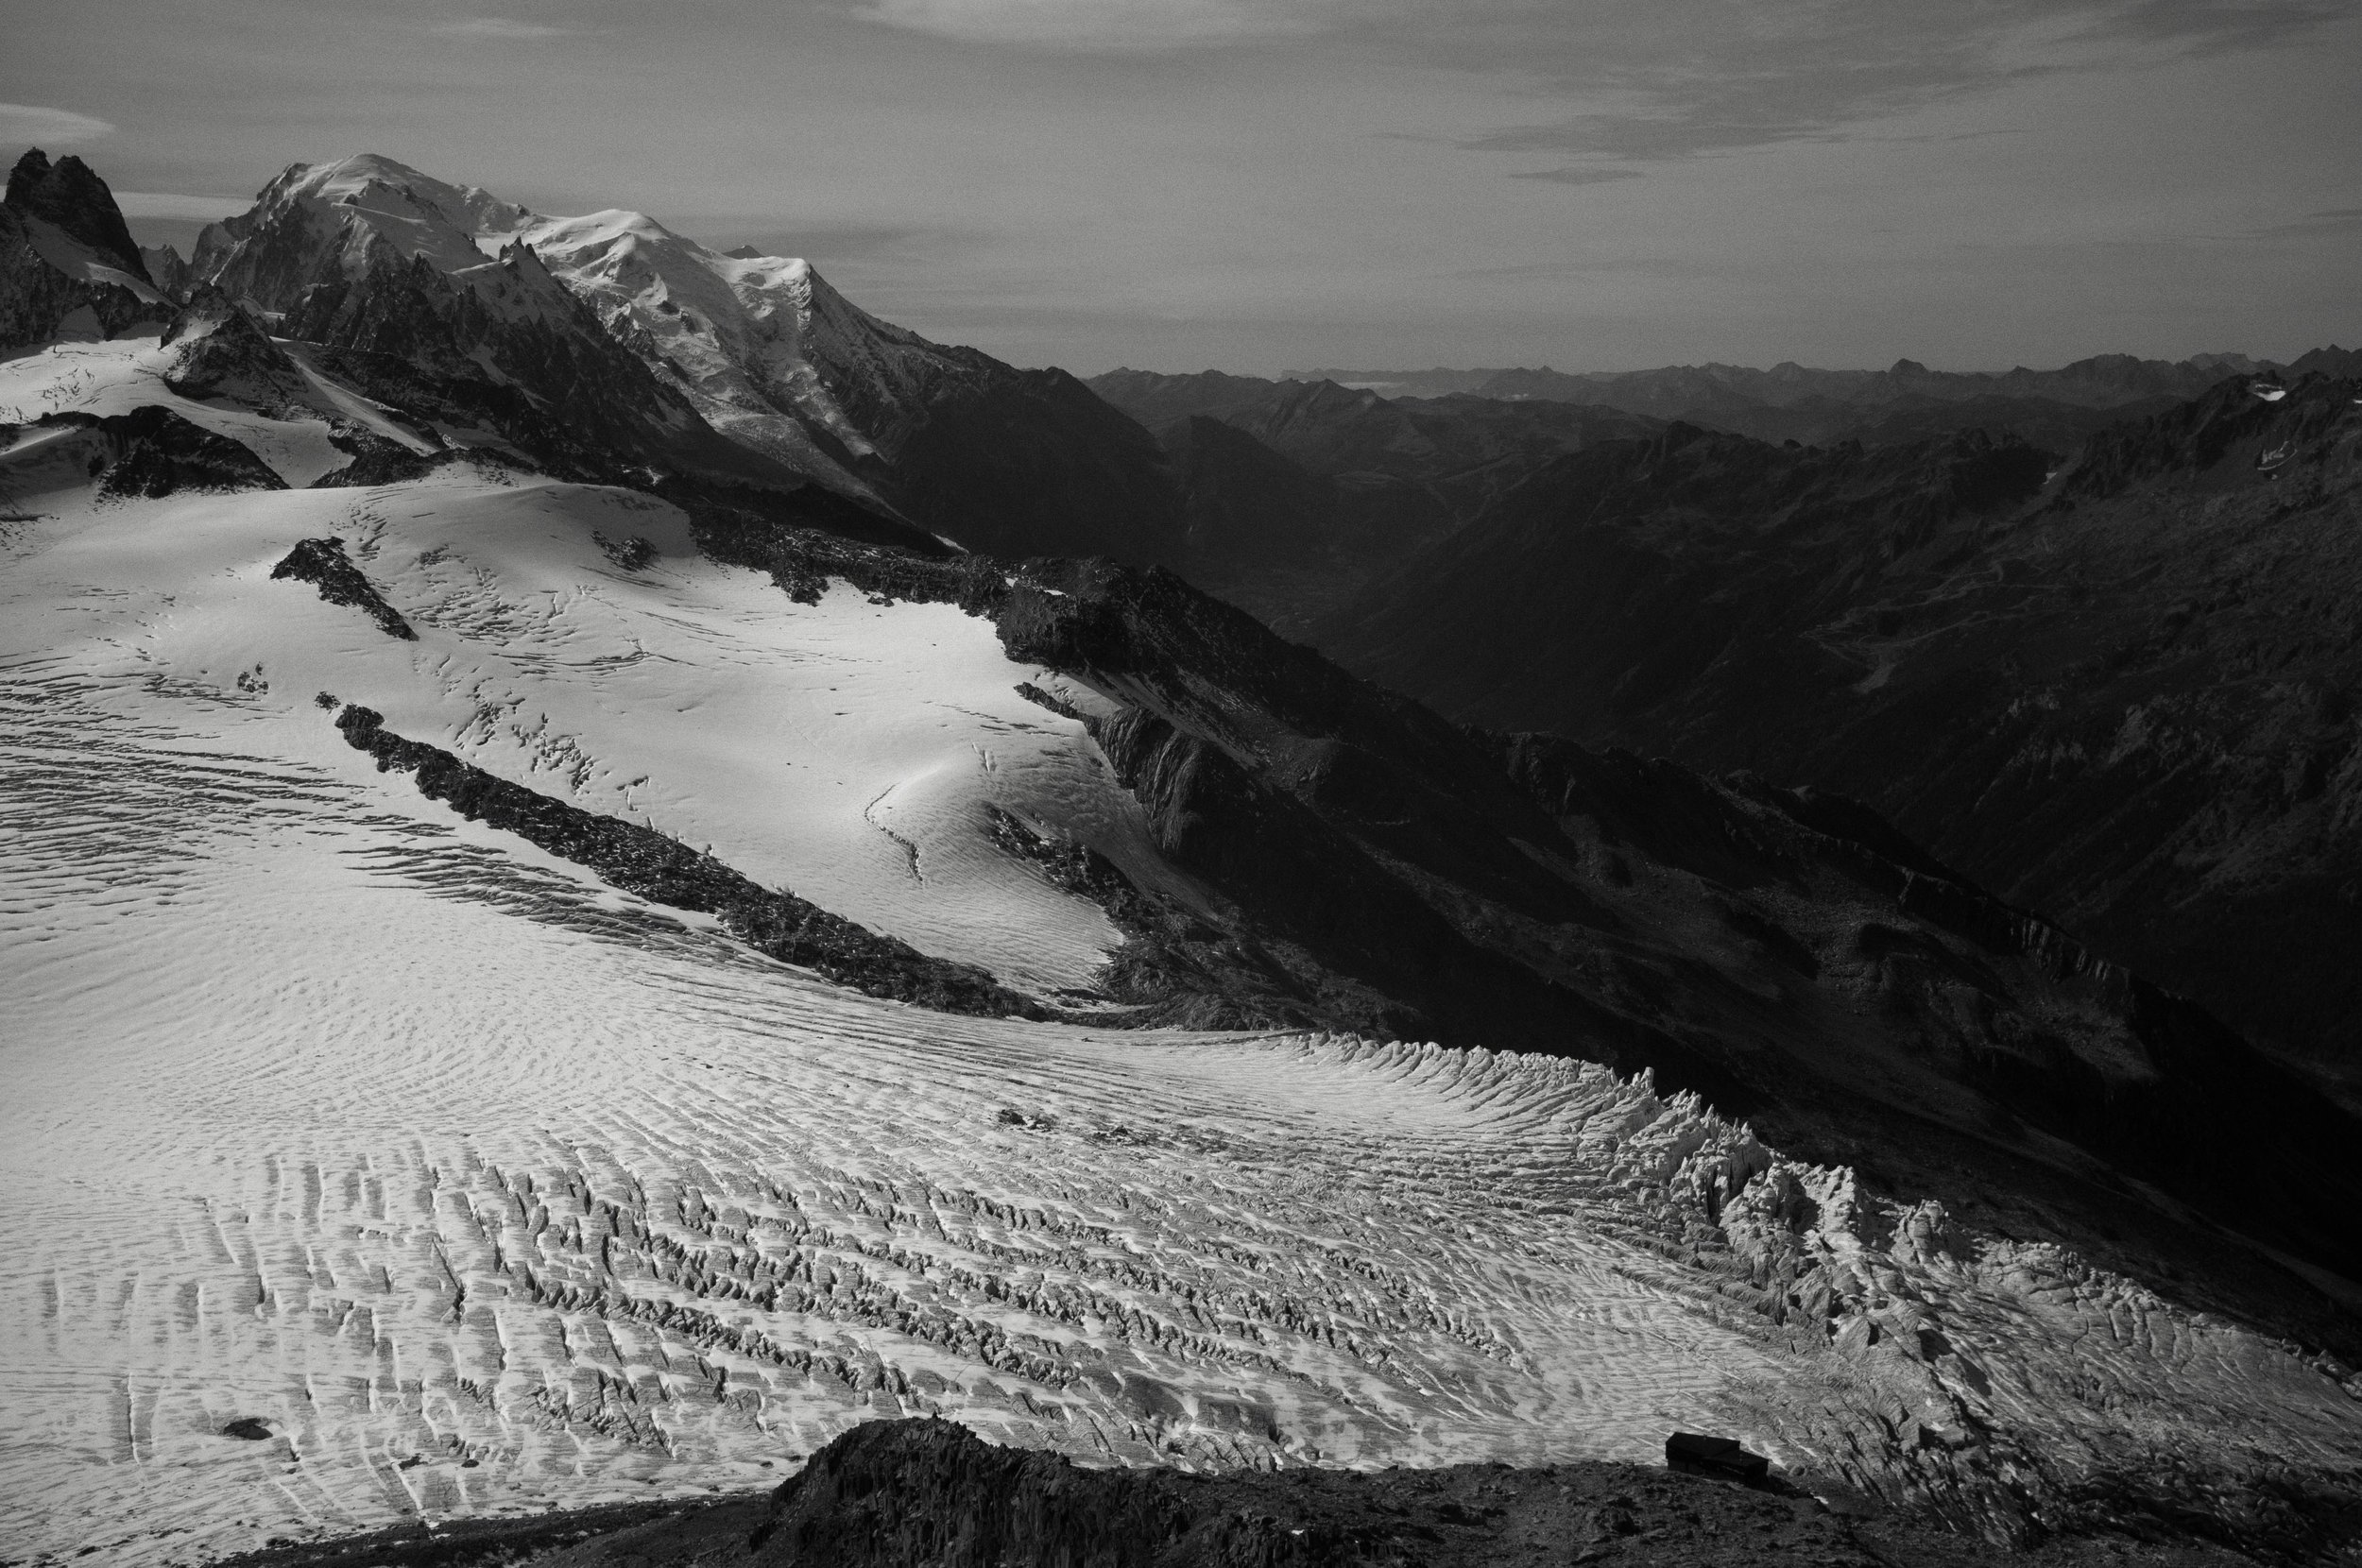 Glacier du tour, Northern Alps, France, 2017